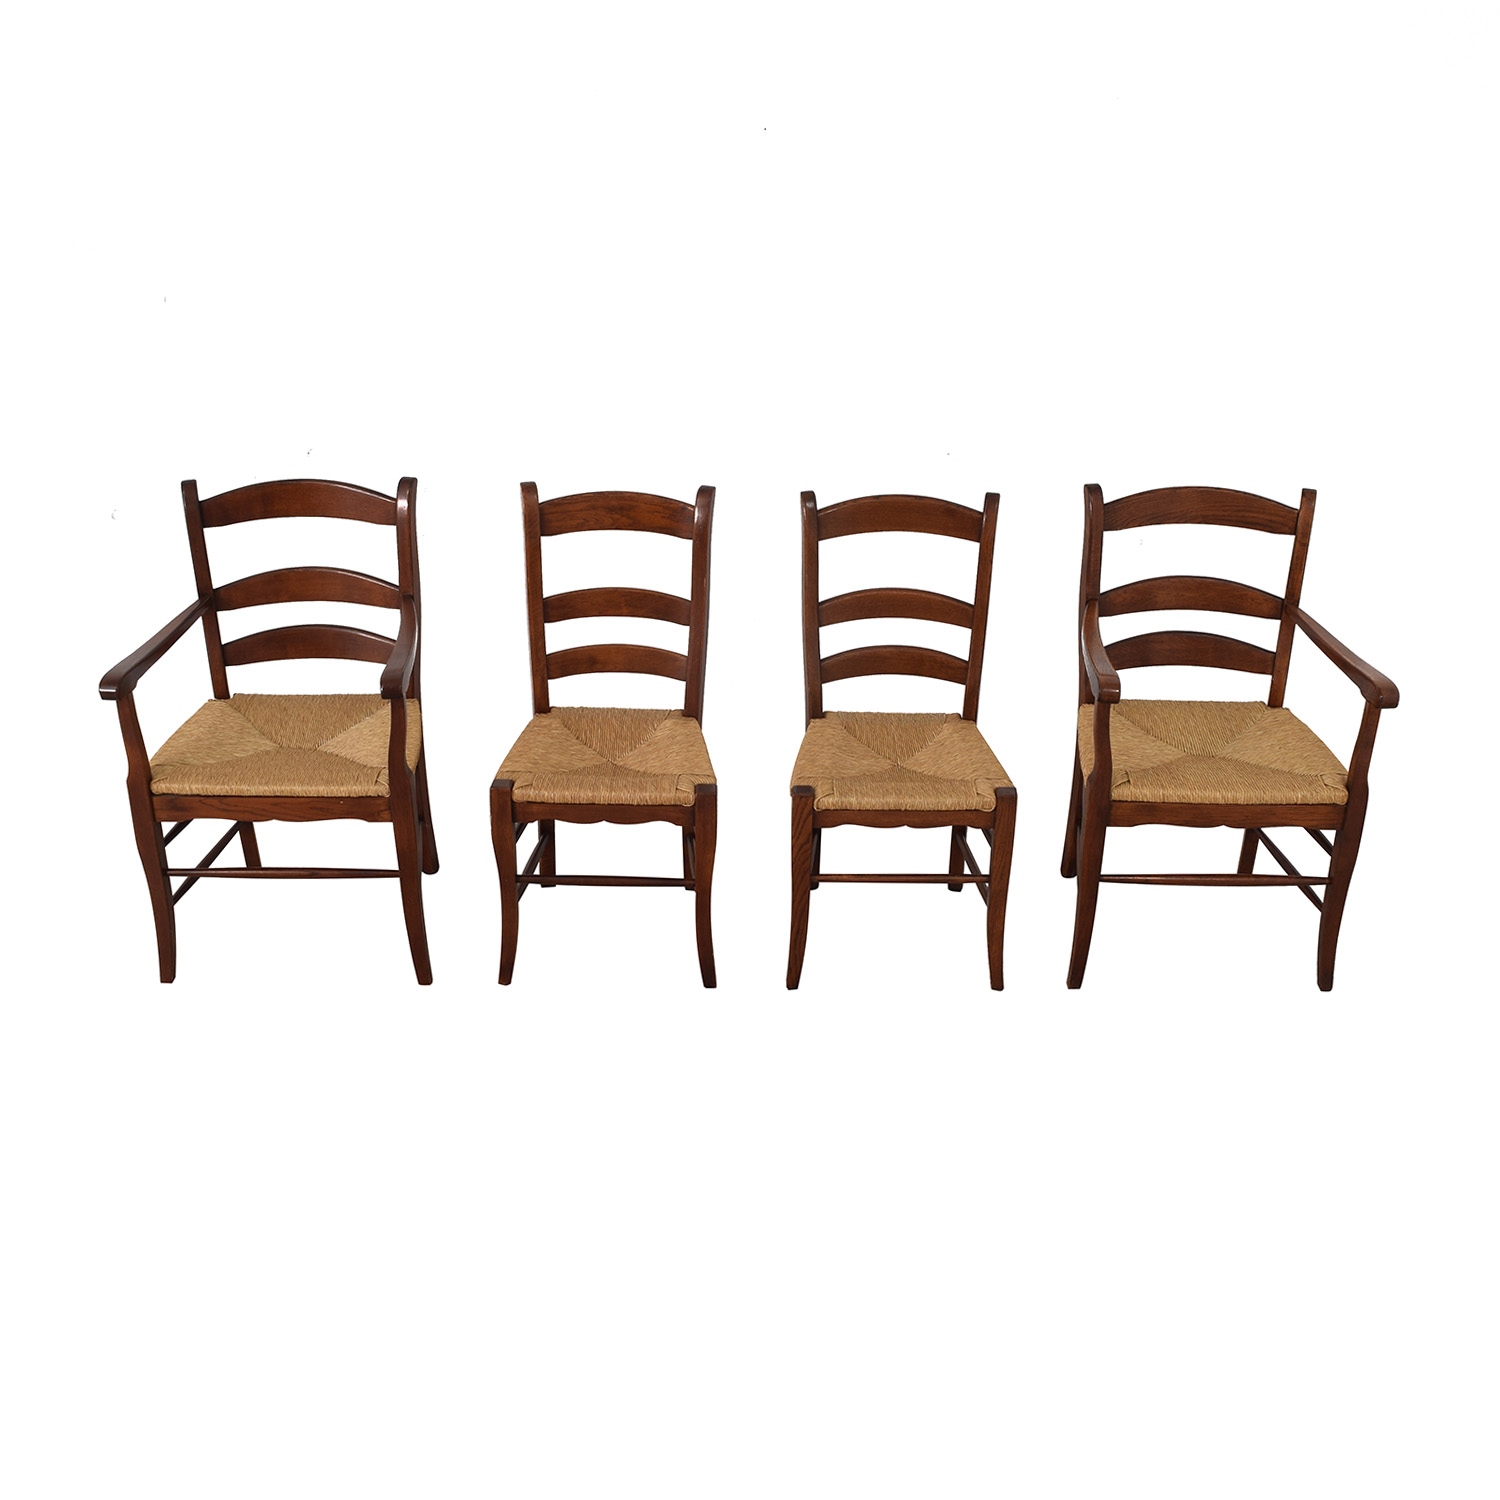 Country Style Dining Chairs / Chairs